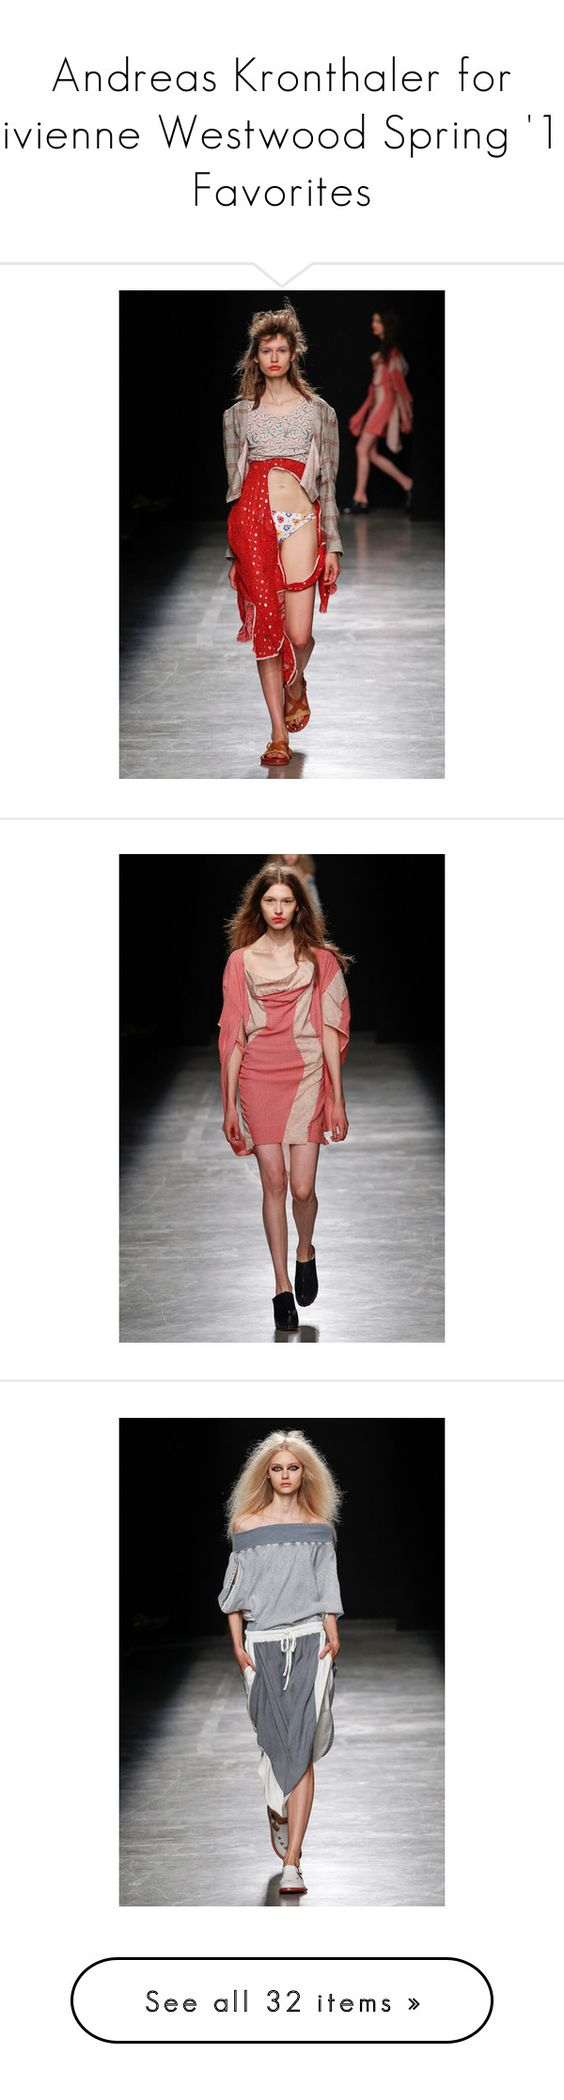 """""""Andreas Kronthaler for Vivienne Westwood Spring '17 Favorites"""" by amberelb ❤ liked on Polyvore"""